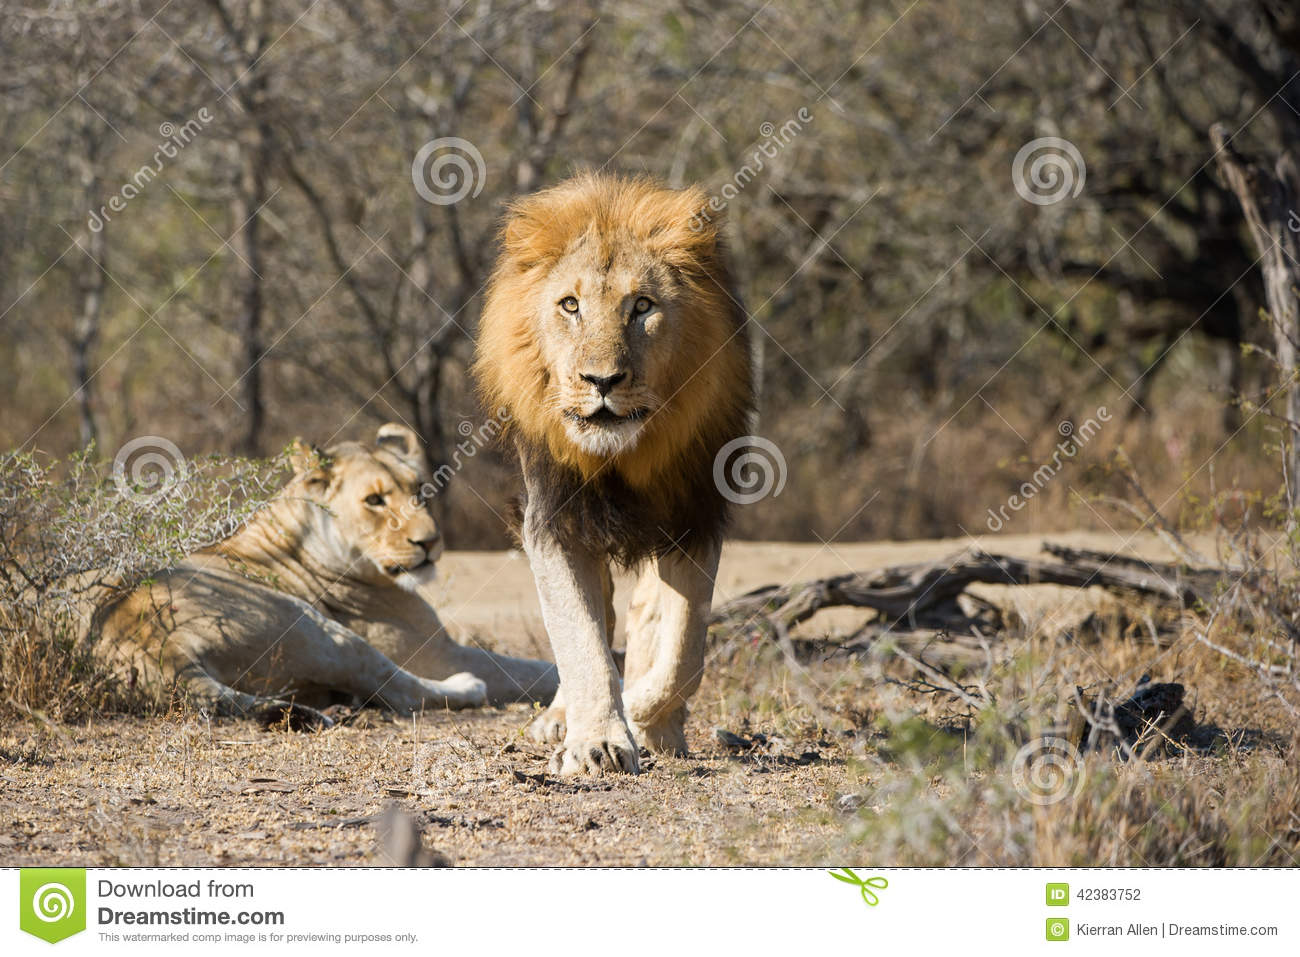 Male lion charging photographer South Africa